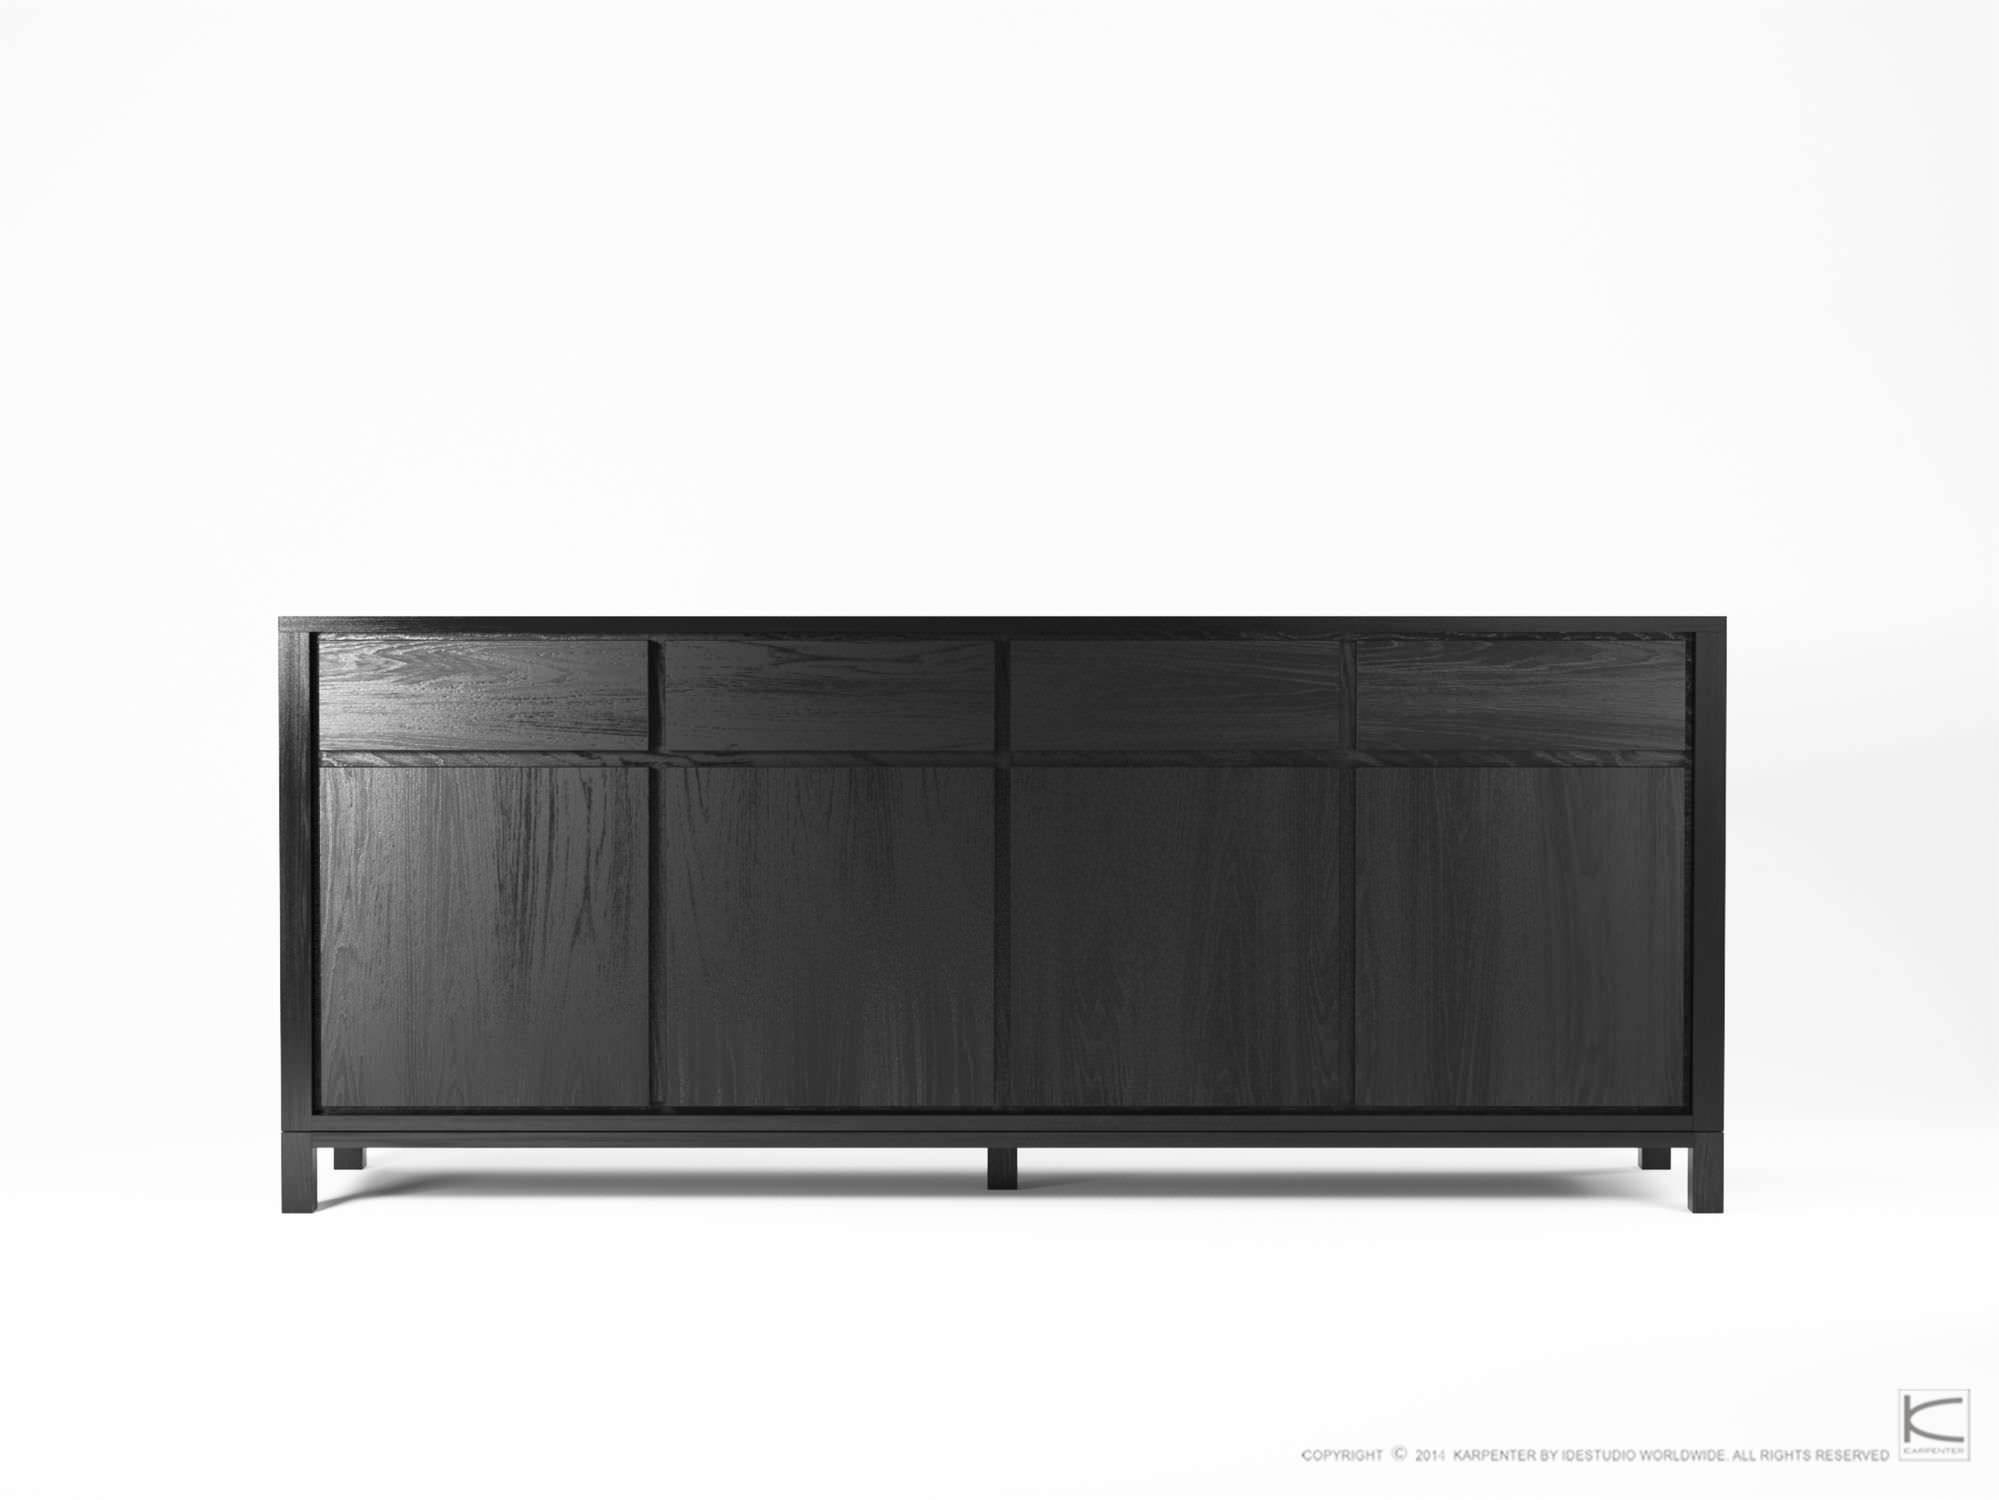 Contemporary Sideboard / Oak / Walnut / Solid Wood – So09 – Karpenter With Regard To Black And Walnut Sideboards (View 3 of 15)